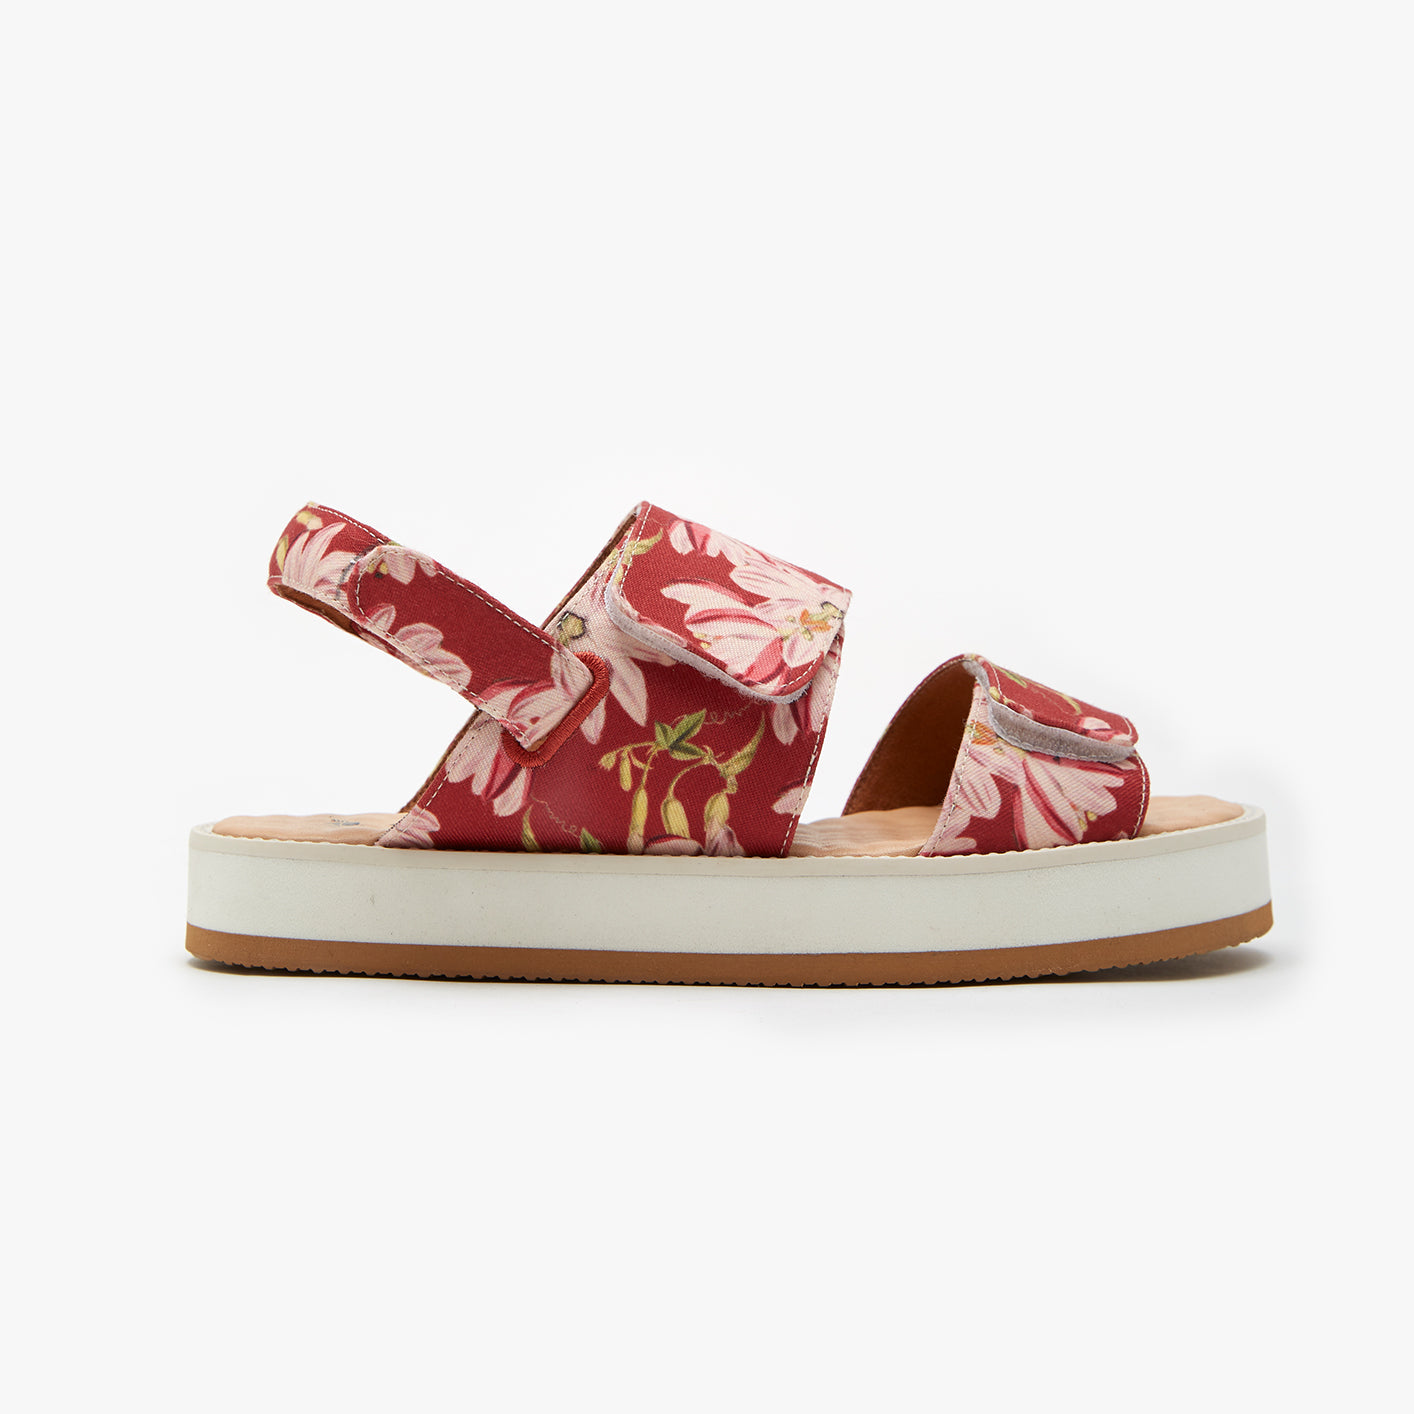 PASSIFLORA STRAP SANDAL - Insecta Shoes Brasil